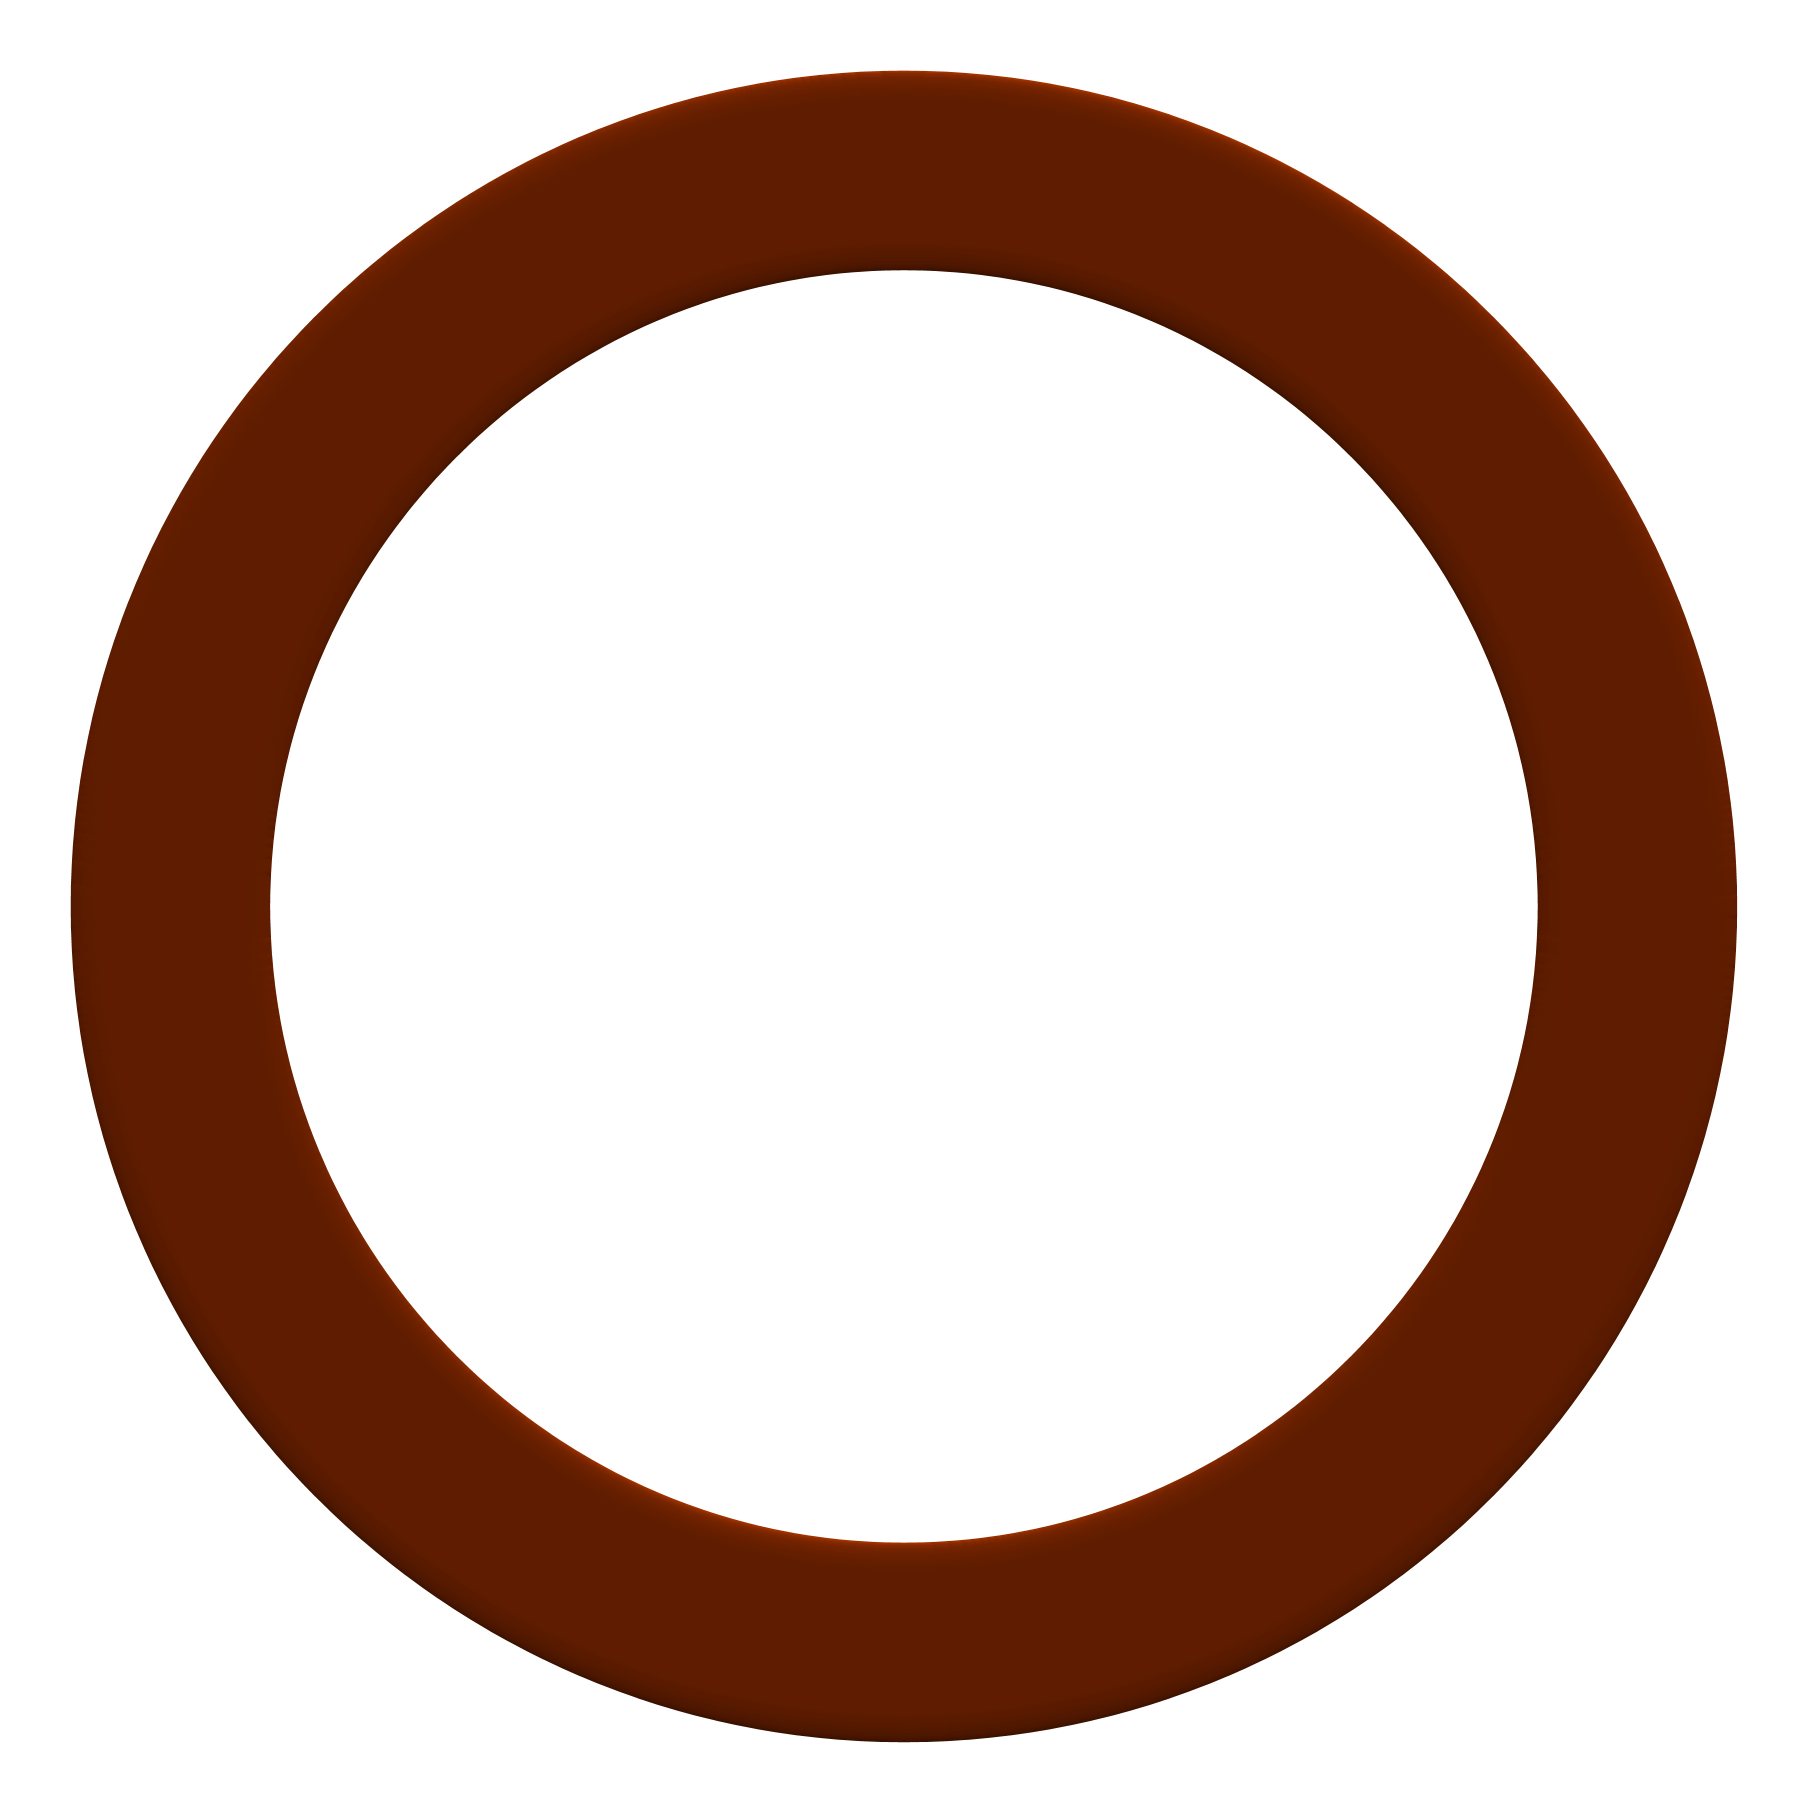 Red circle transparent png. Pictures free icons and